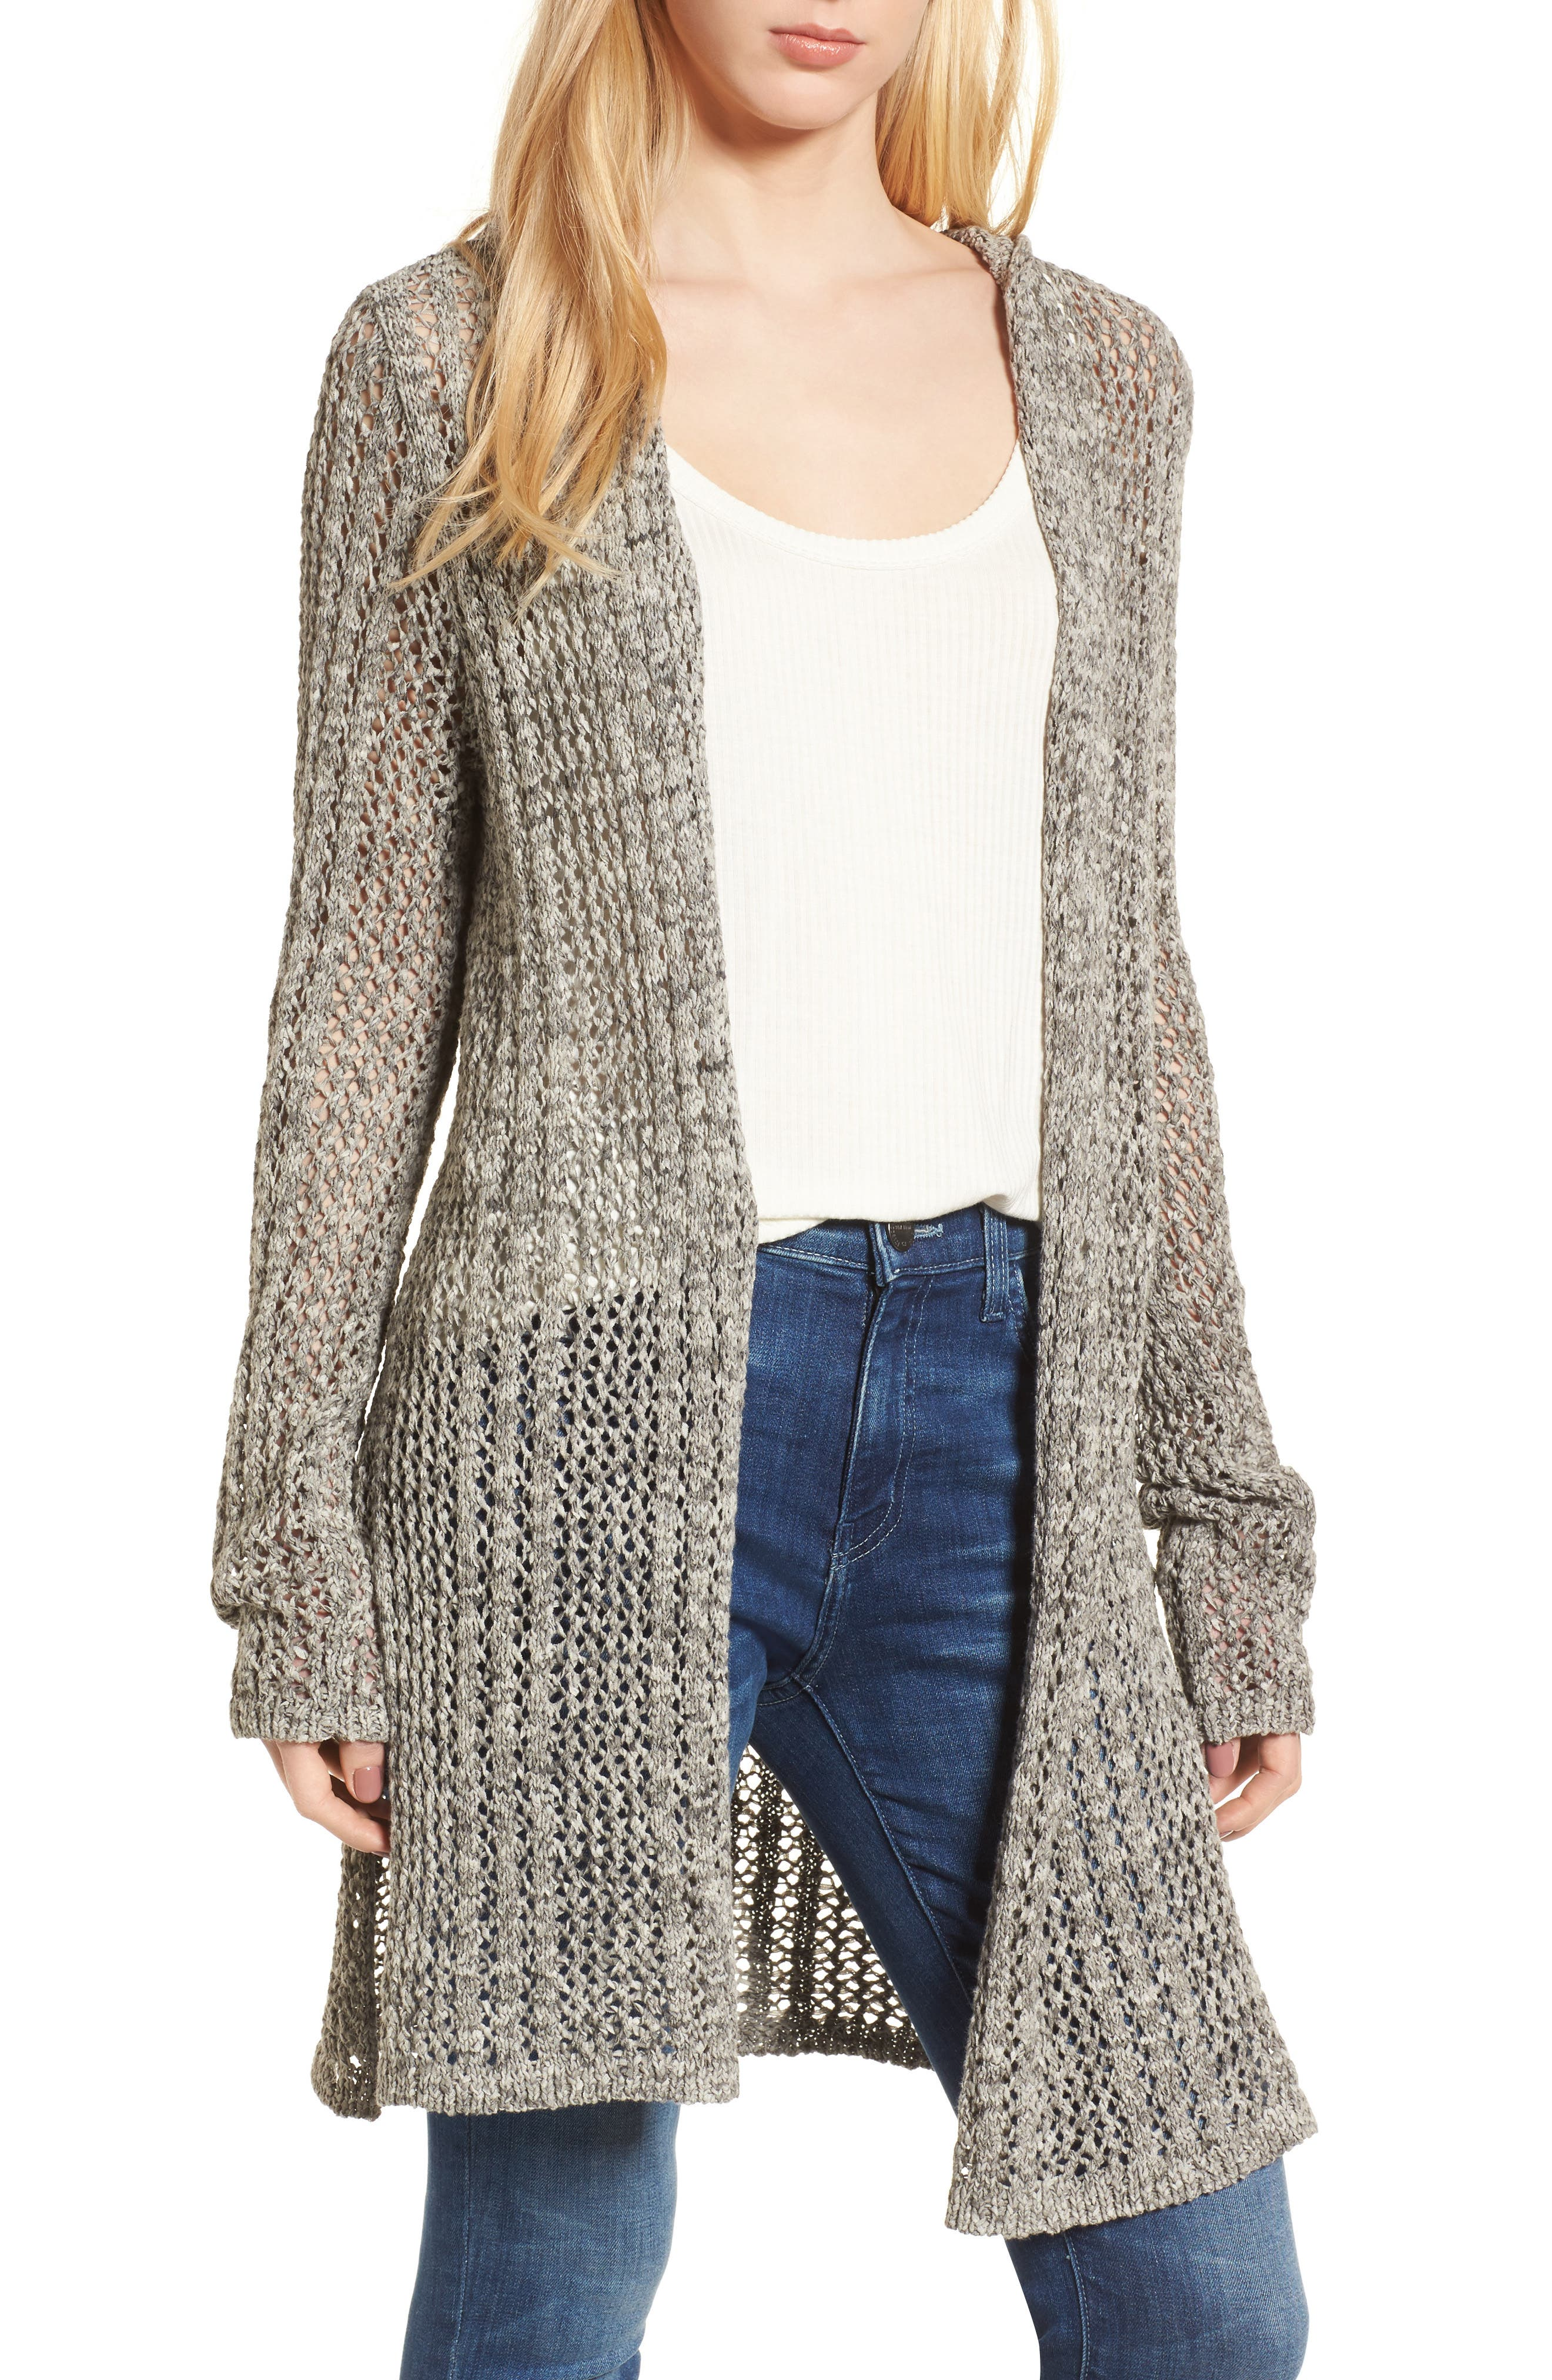 Knox Hooded Cardigan,                         Main,                         color,